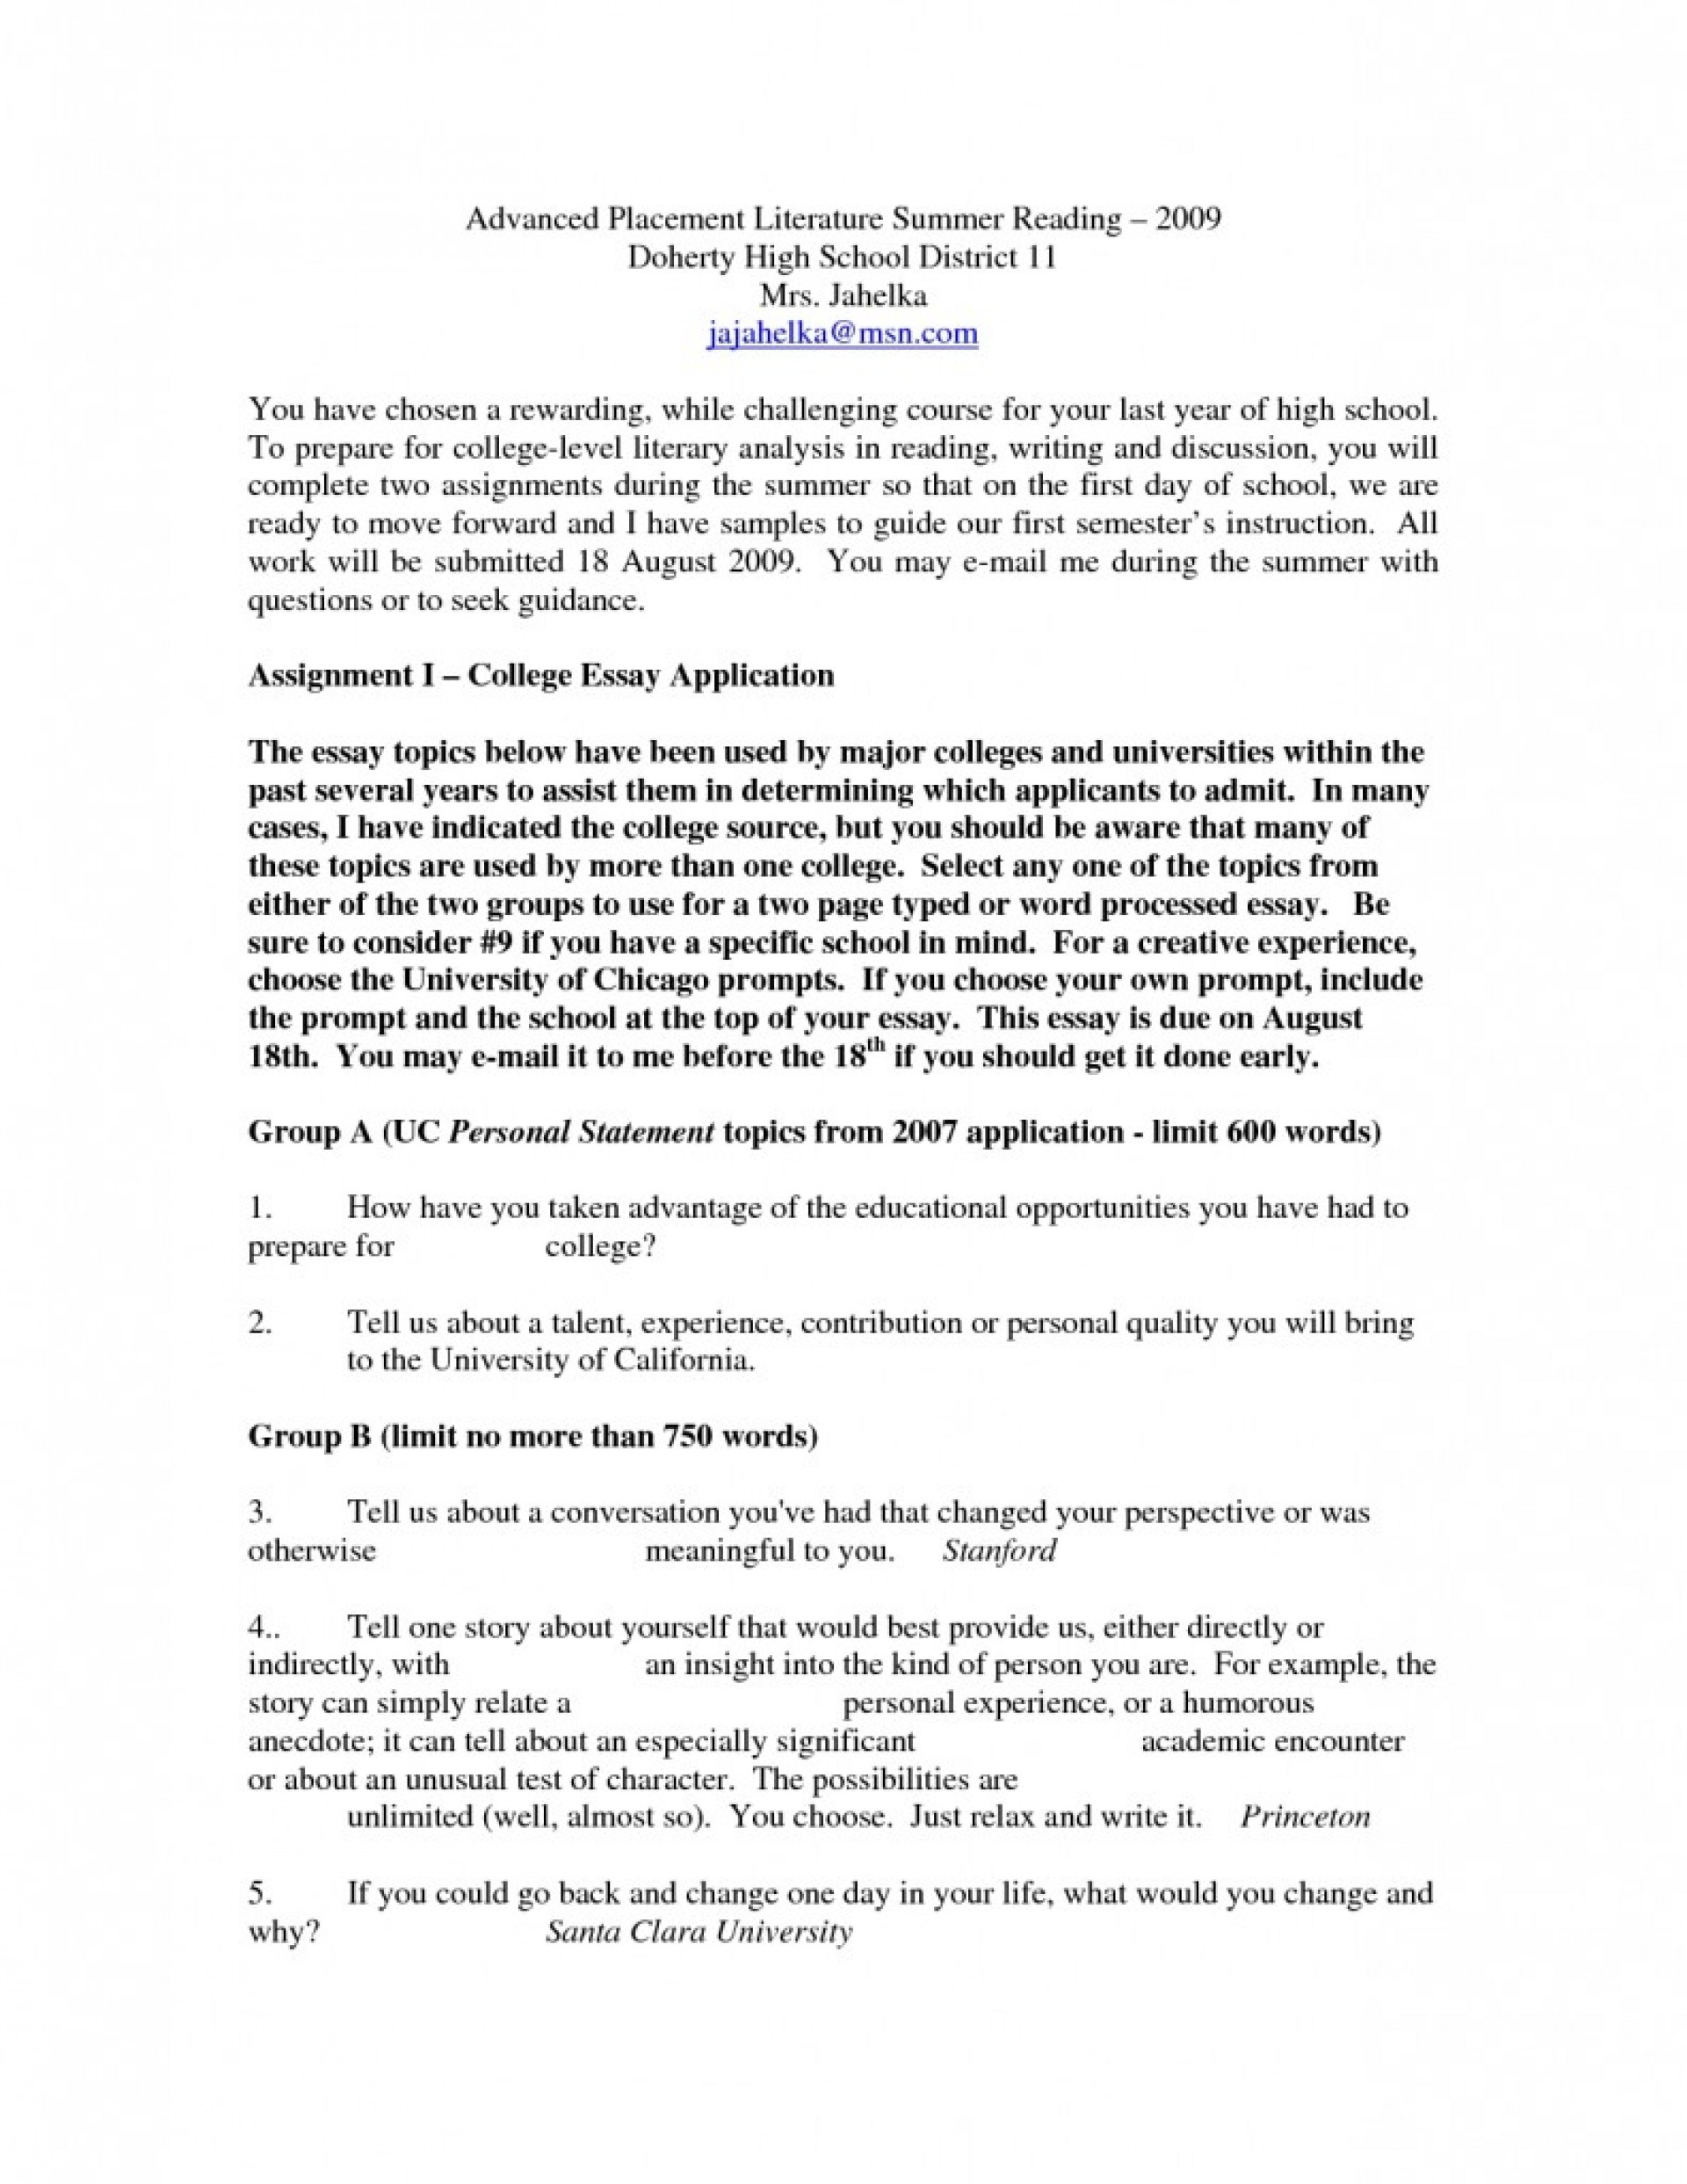 006 Essay Example How To Write The Perfect College Application Term Paper Writing Service Tips For High School Samples Cover Letter Reading Teacher Staggering A Good Nytimes Examples 1920